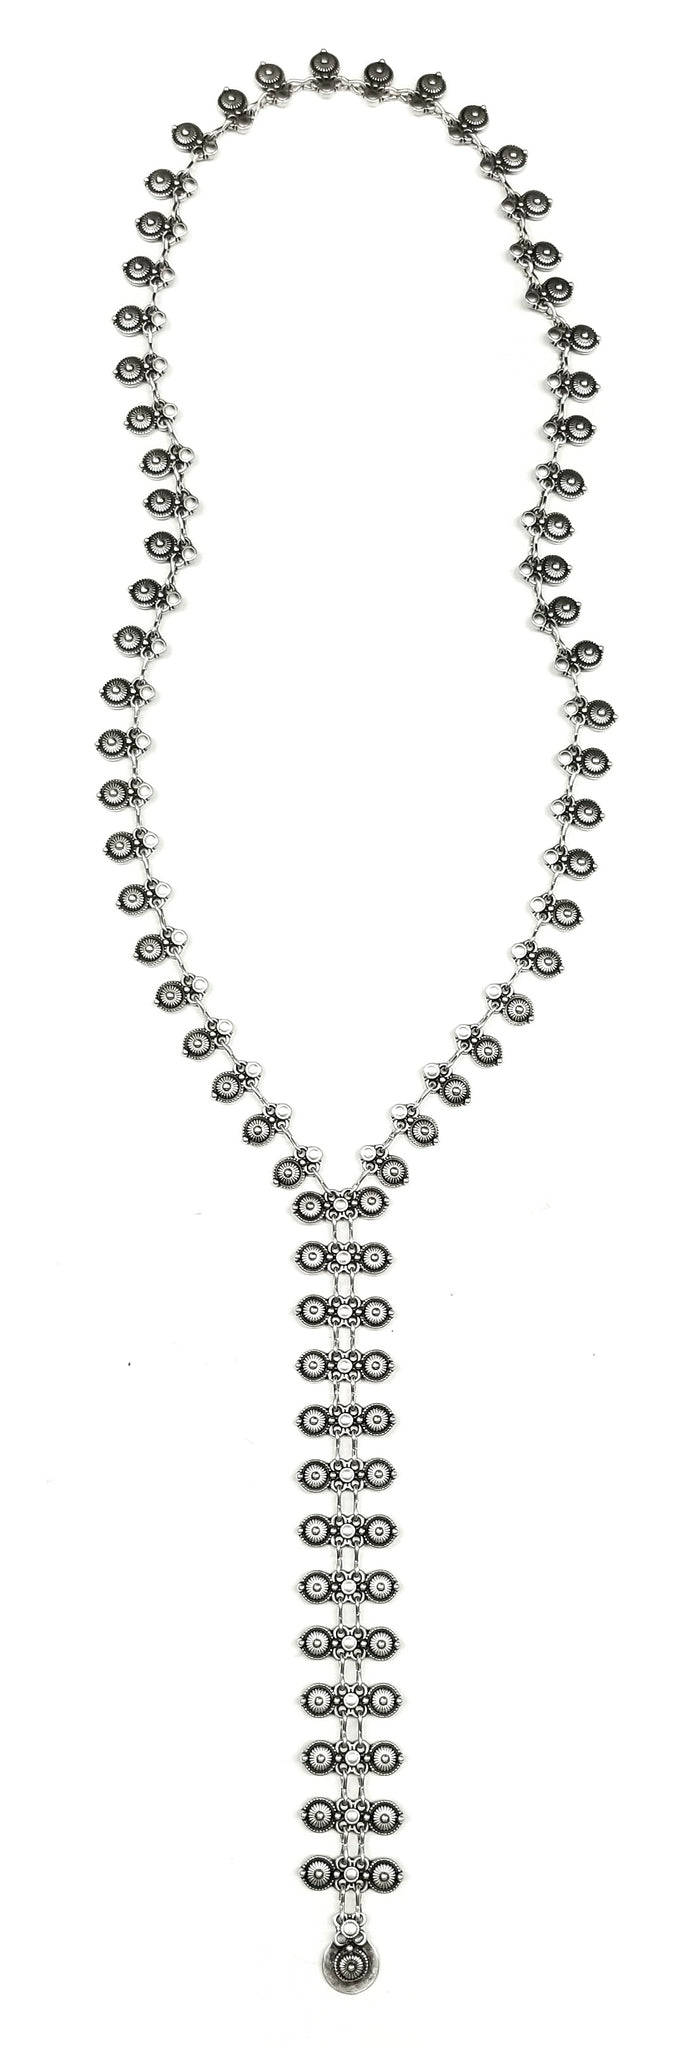 Pewter Necklace - SKU# SLVR1088